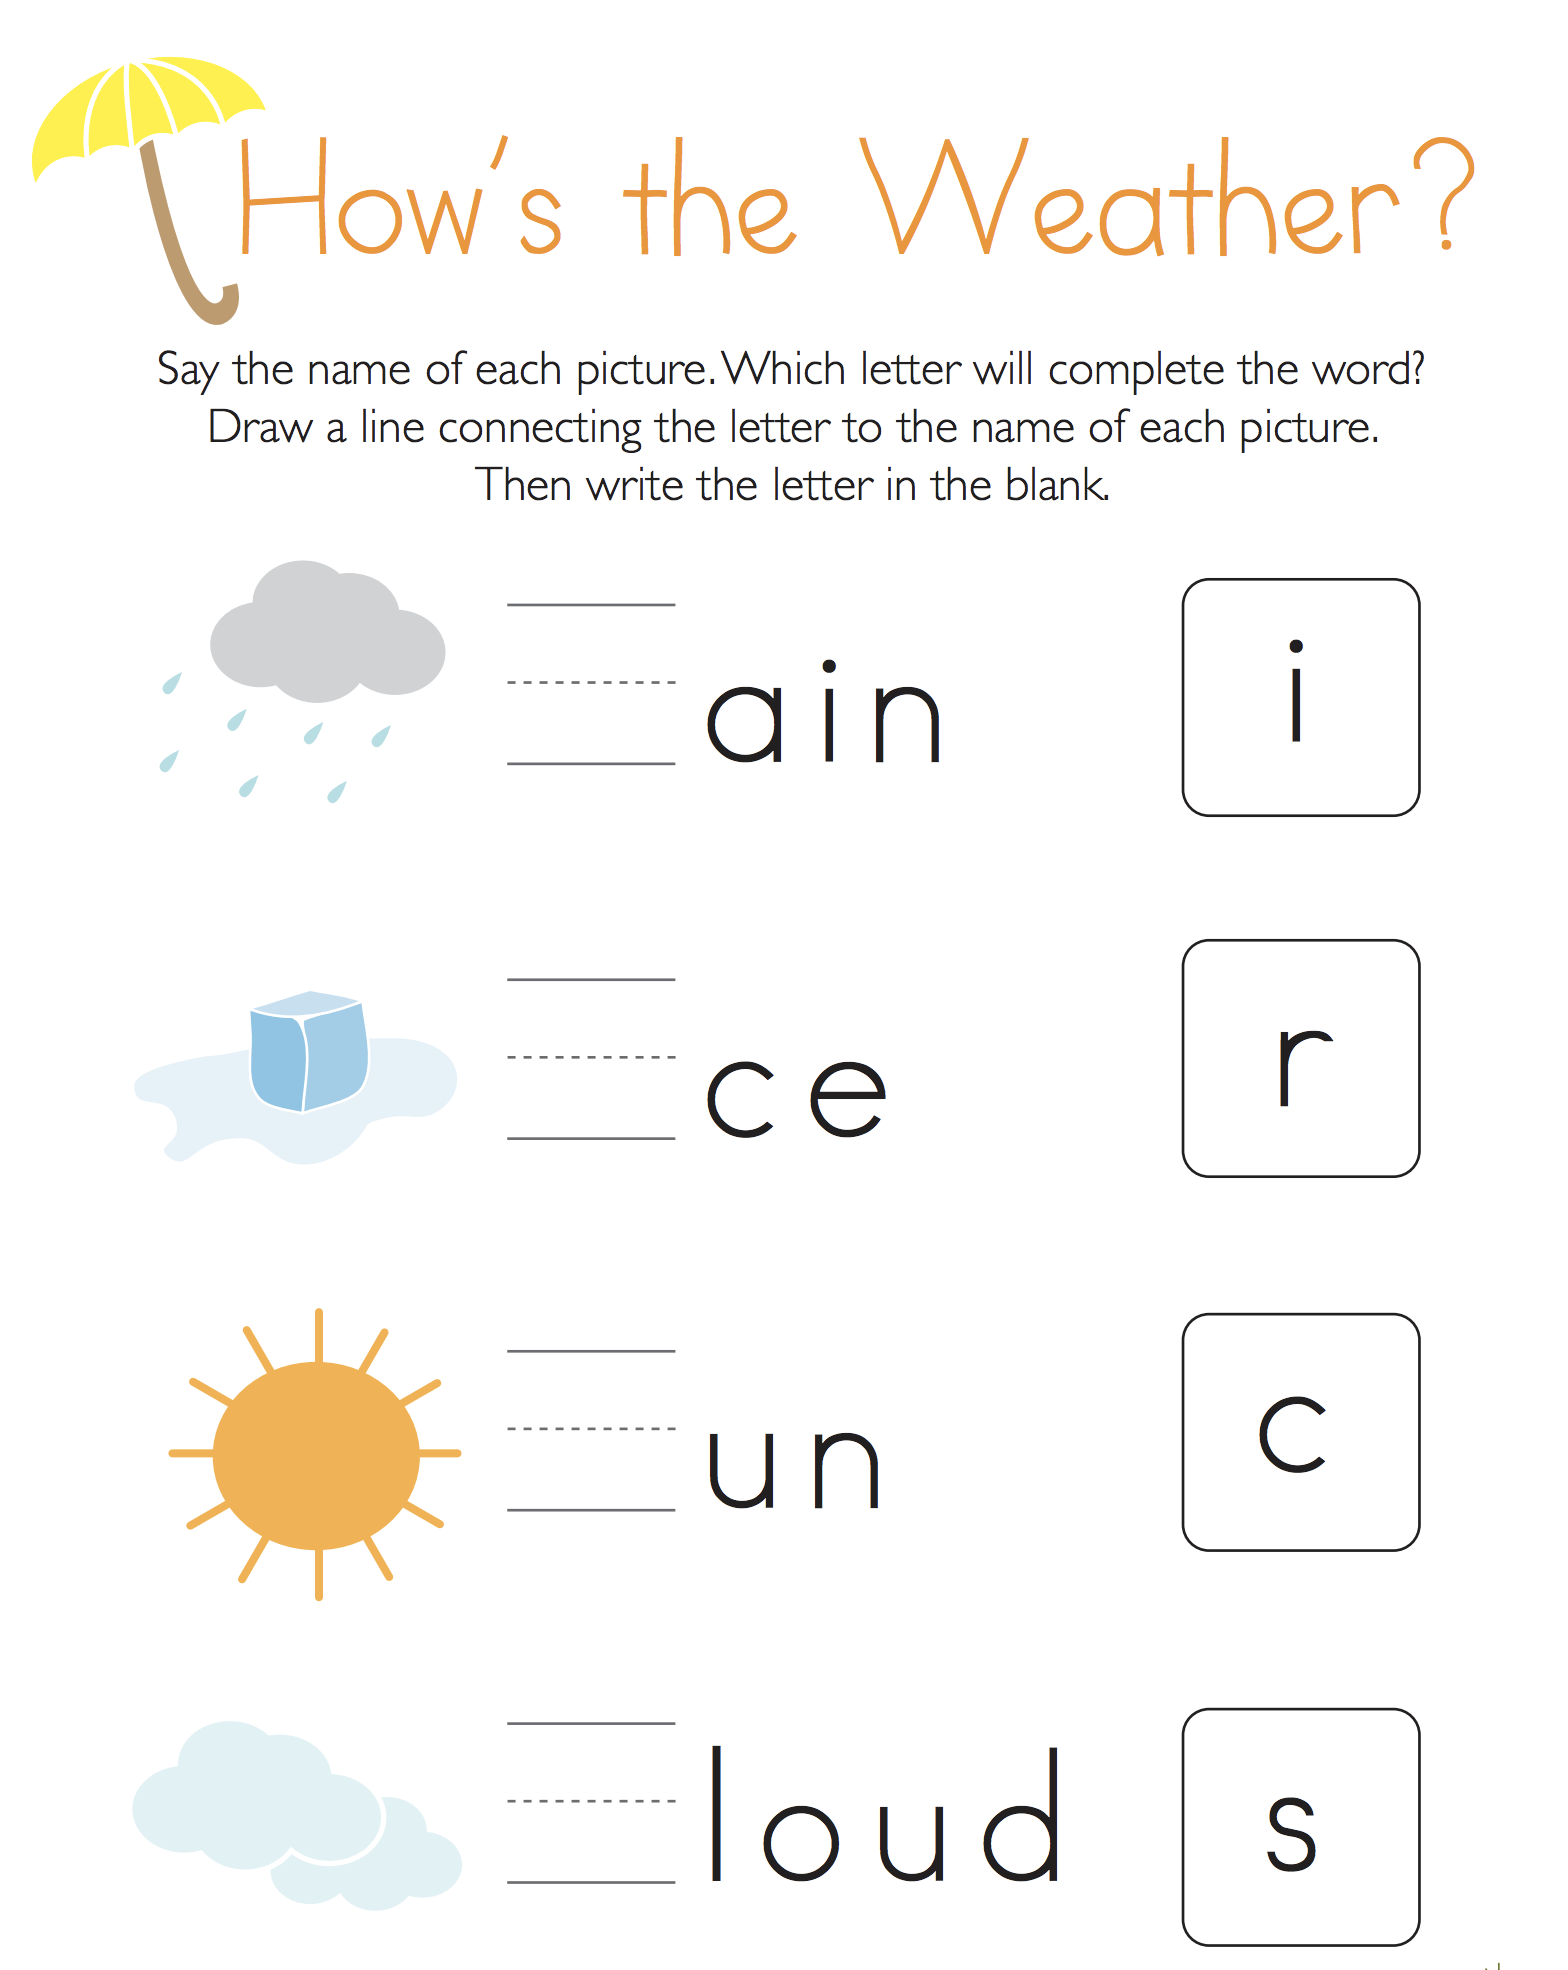 Write the Missing Letter: How's the Weather?